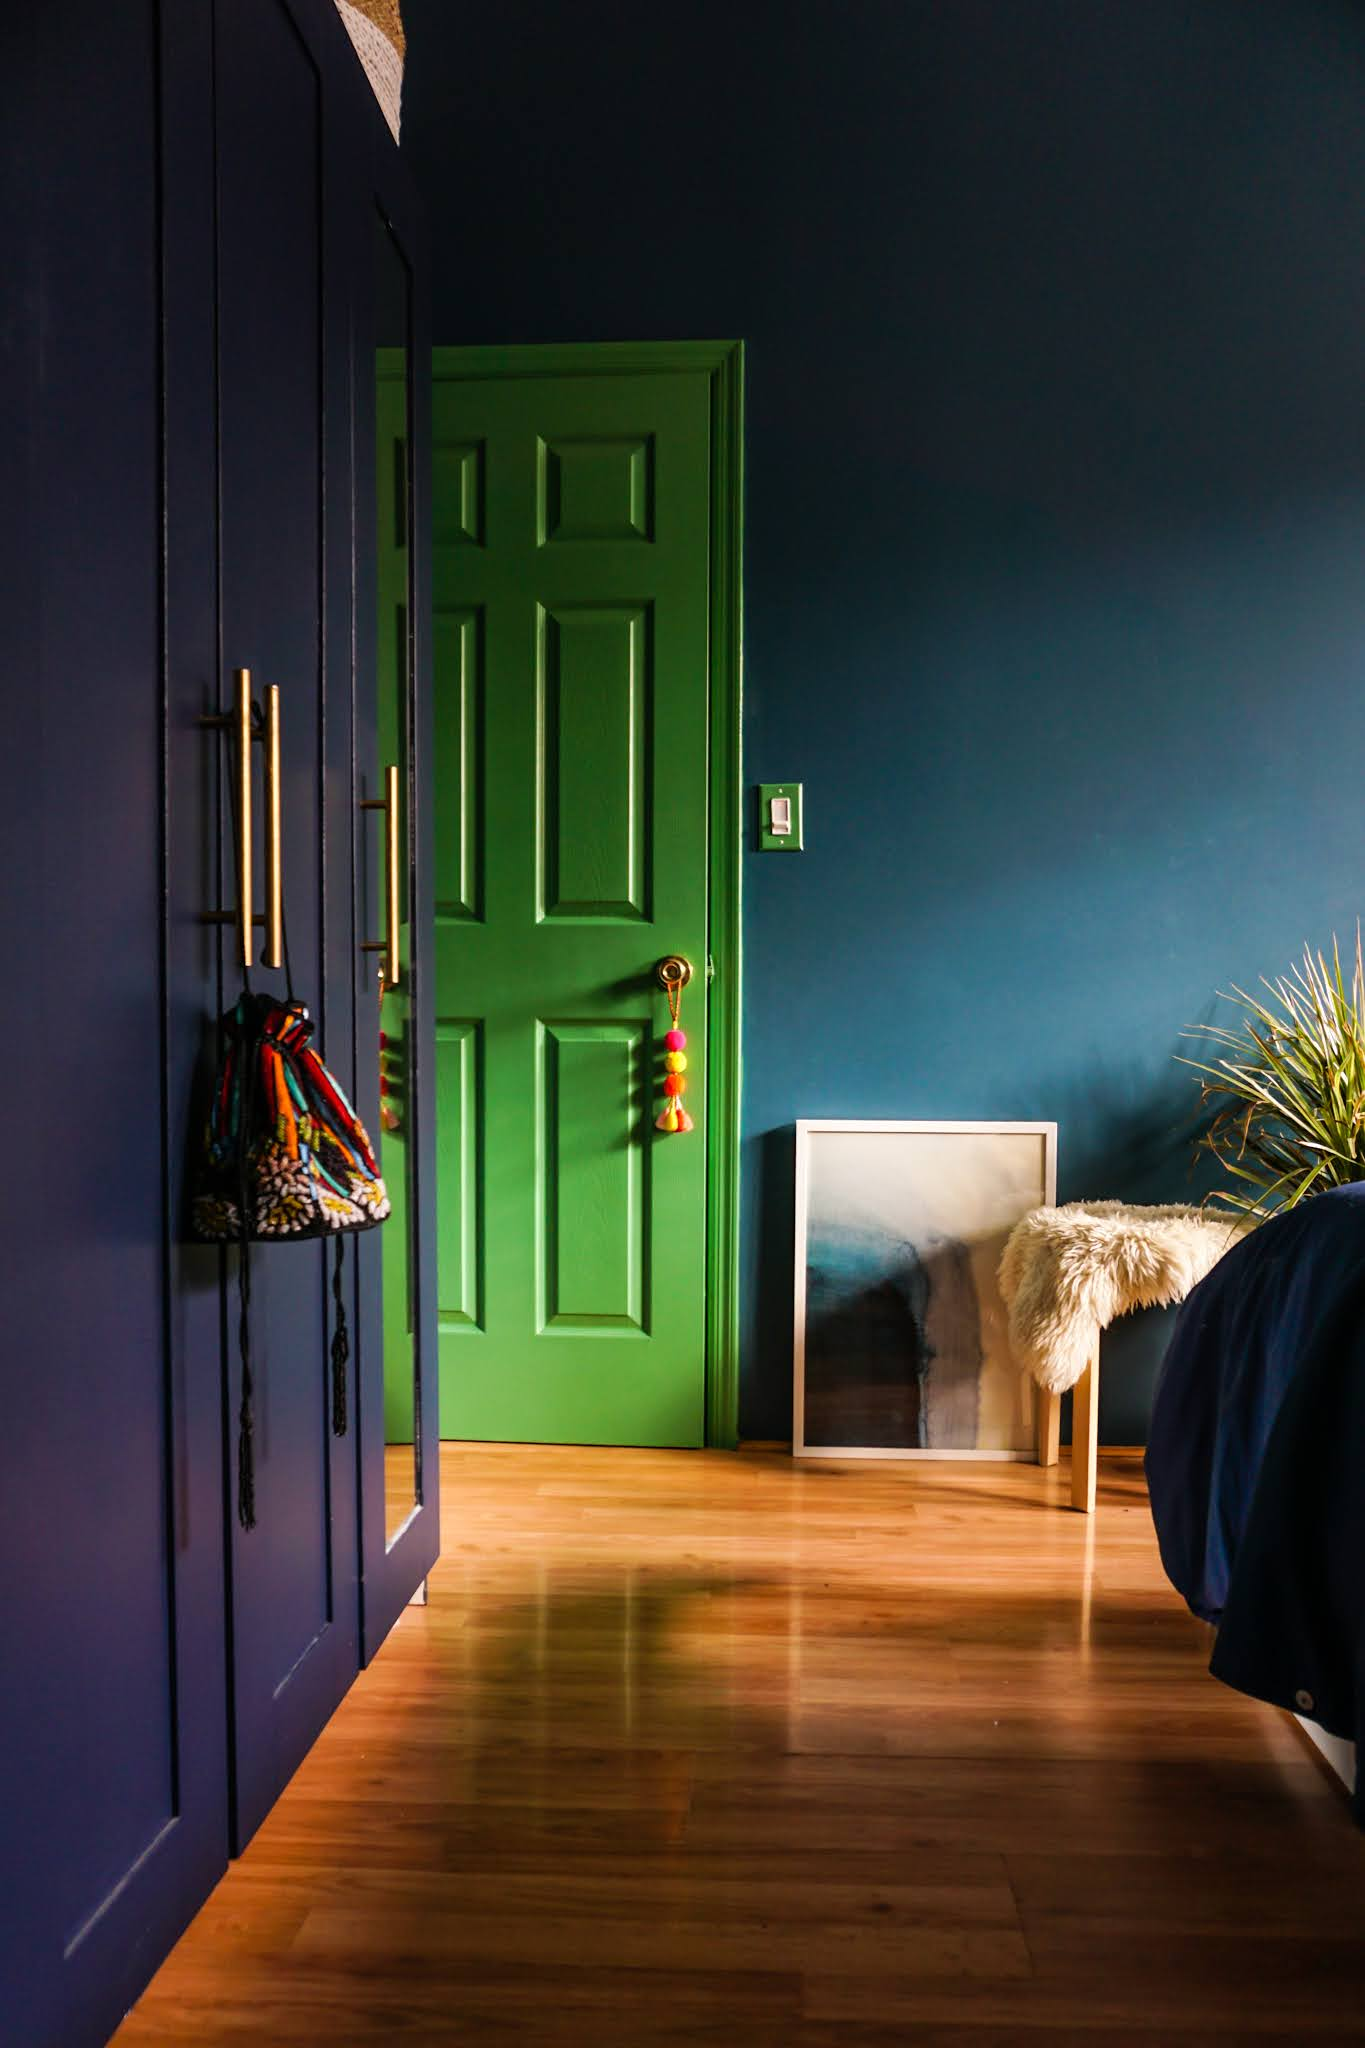 green bedroom door // green and blue bedroom // green and aqua bedroom // deep bedroom colors // soothing dark bedroom colors // bedroom color Inspo // color scheme blue and green // Kelly green door // Clare Paint matcha latte // Clare Paint deep dive // Clare Paint goodnight moon // blue bedroom // green bedroom // colorful doors // colorful interiors // colorful interior door // colorful homes // Megan Zietz home // tfdiaries home // green bedroom door // deep blue walls // dark and moody bedrooms // small colorful homes // small space paint colors // colorful home inspiration // contrasting door colors // door color ideas // door color inspo // boho bedrooms // moody bedrooms // jewel tone bedrooms //